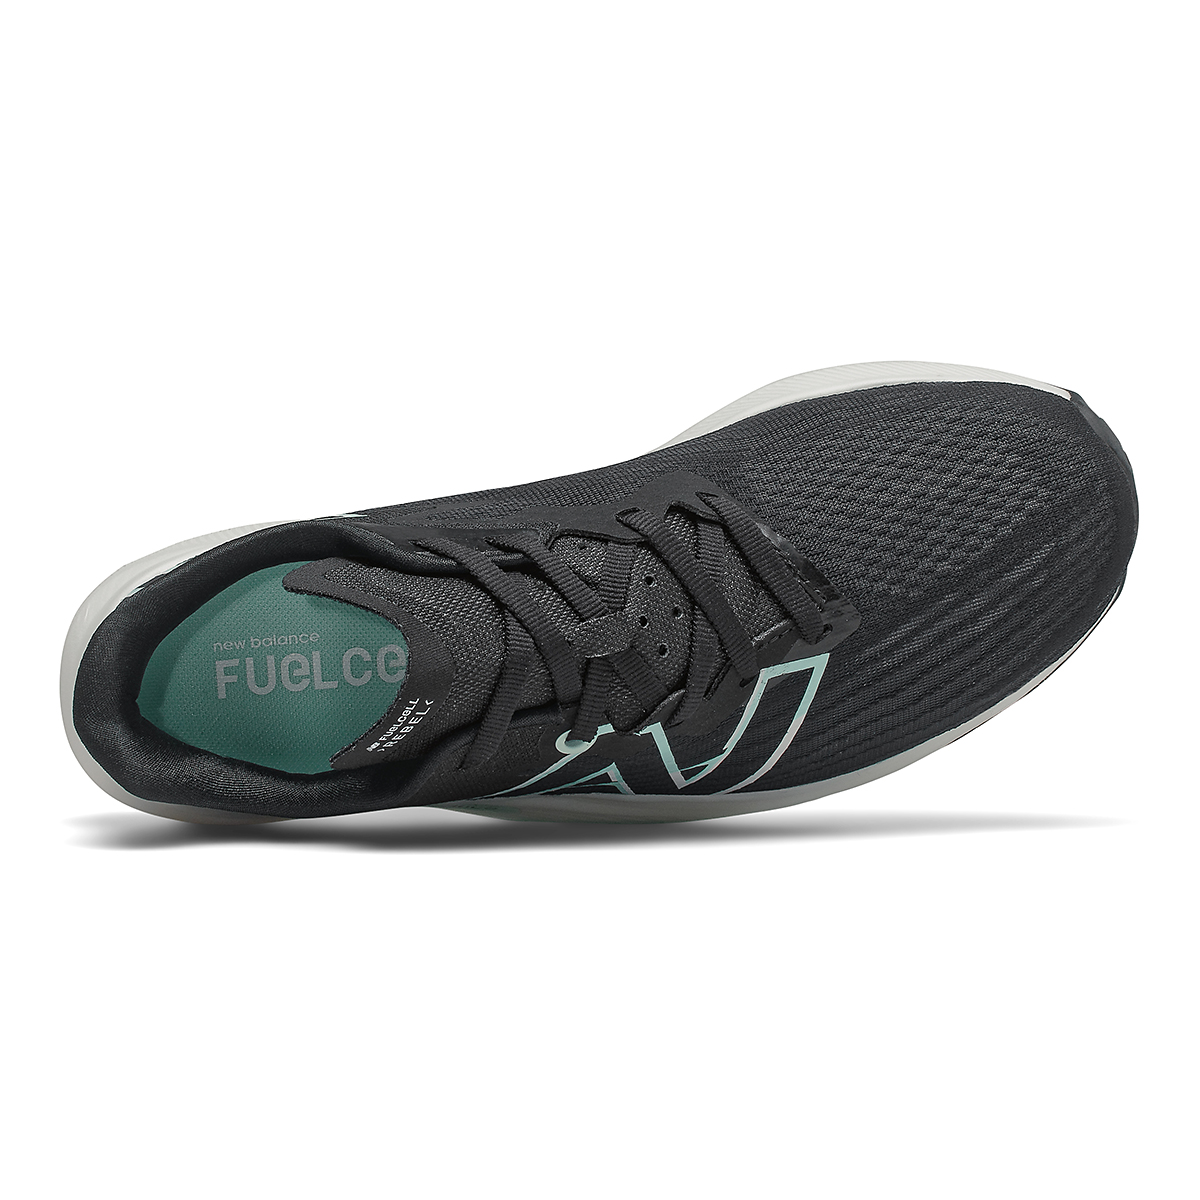 Women's New Balance Fuelcell Rebel V2 Running Shoe - Color: Black/White Mint/Citrus Punch - Size: 5 - Width: Regular, Black/White Mint/Citrus Punch, large, image 3